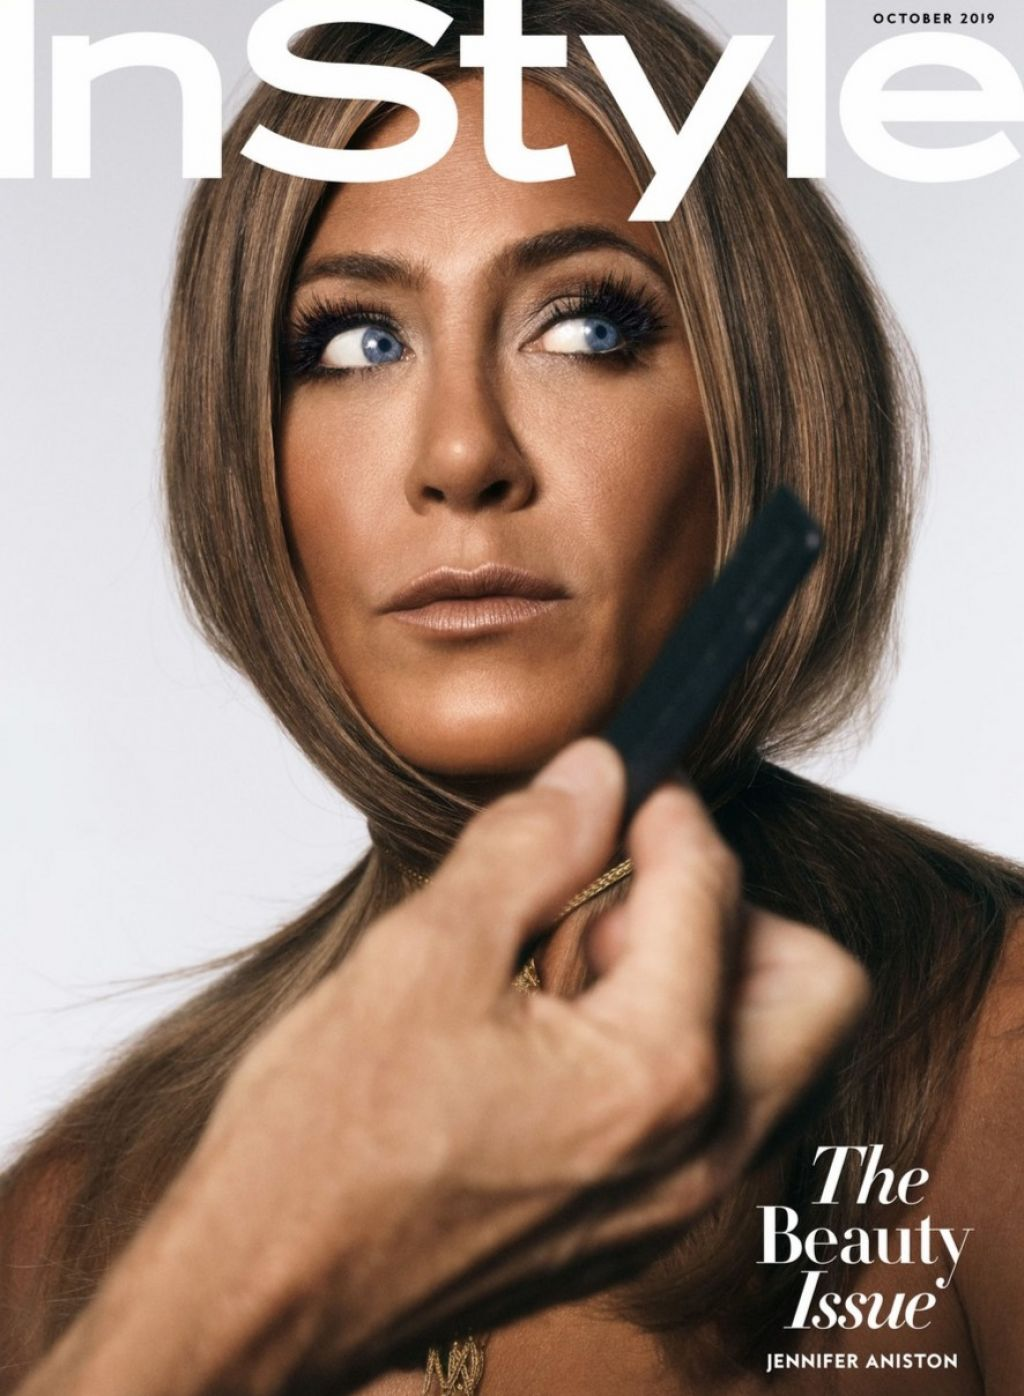 Jennifer Aniston is the latest to star on the cover of InStyle magazine